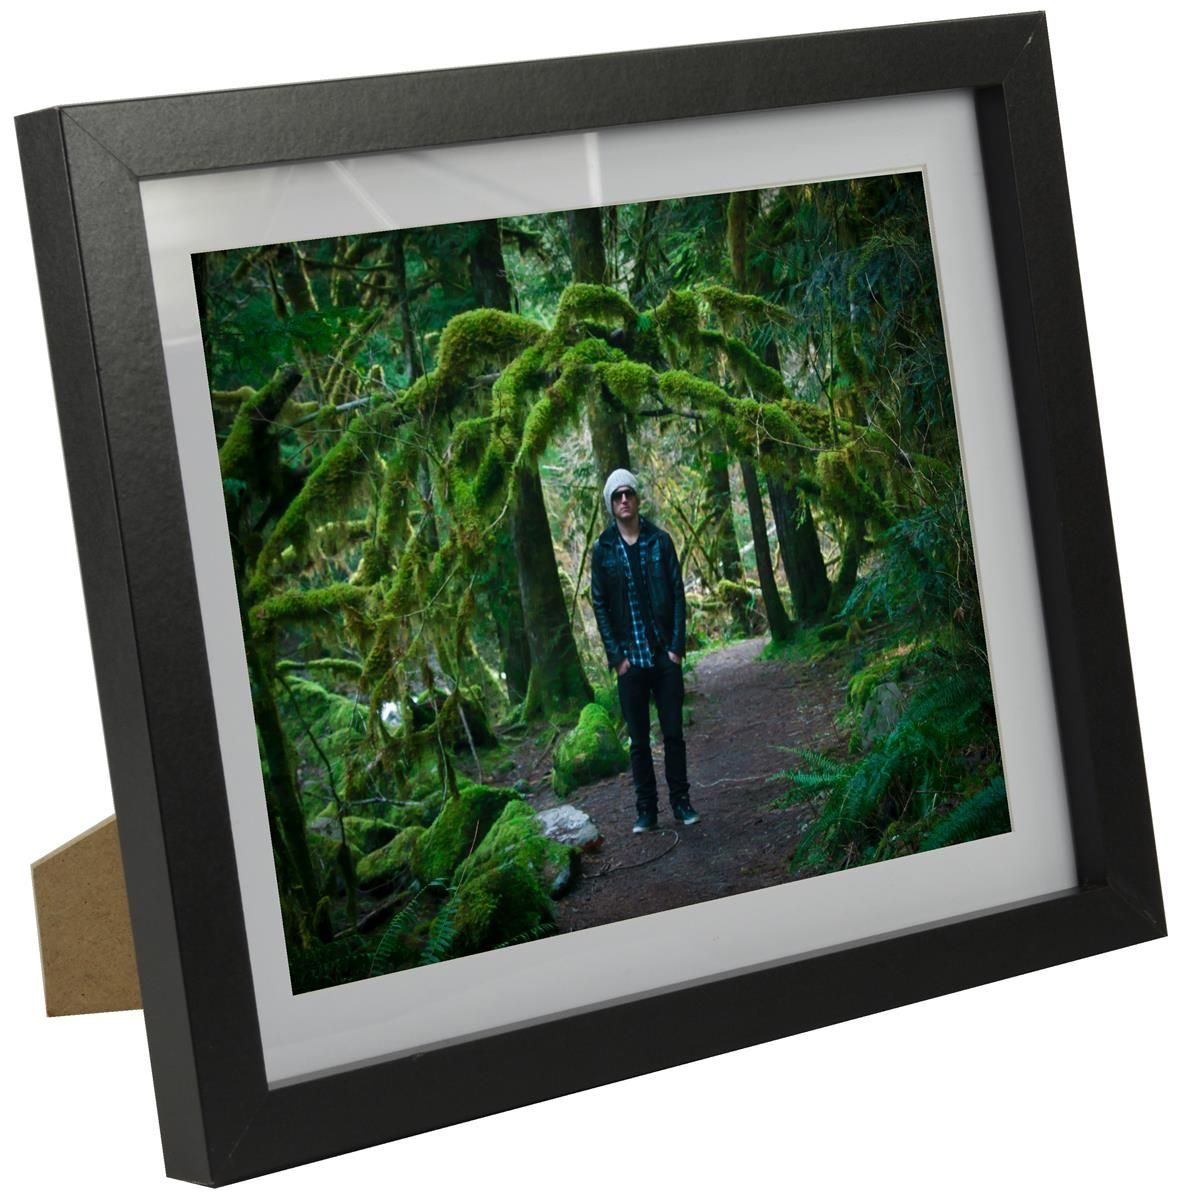 8 X 10 Picture Frame With Removable Mat For Tabletop Or Wall Black Black Photo Frames Picture On Wood Wood Picture Frames